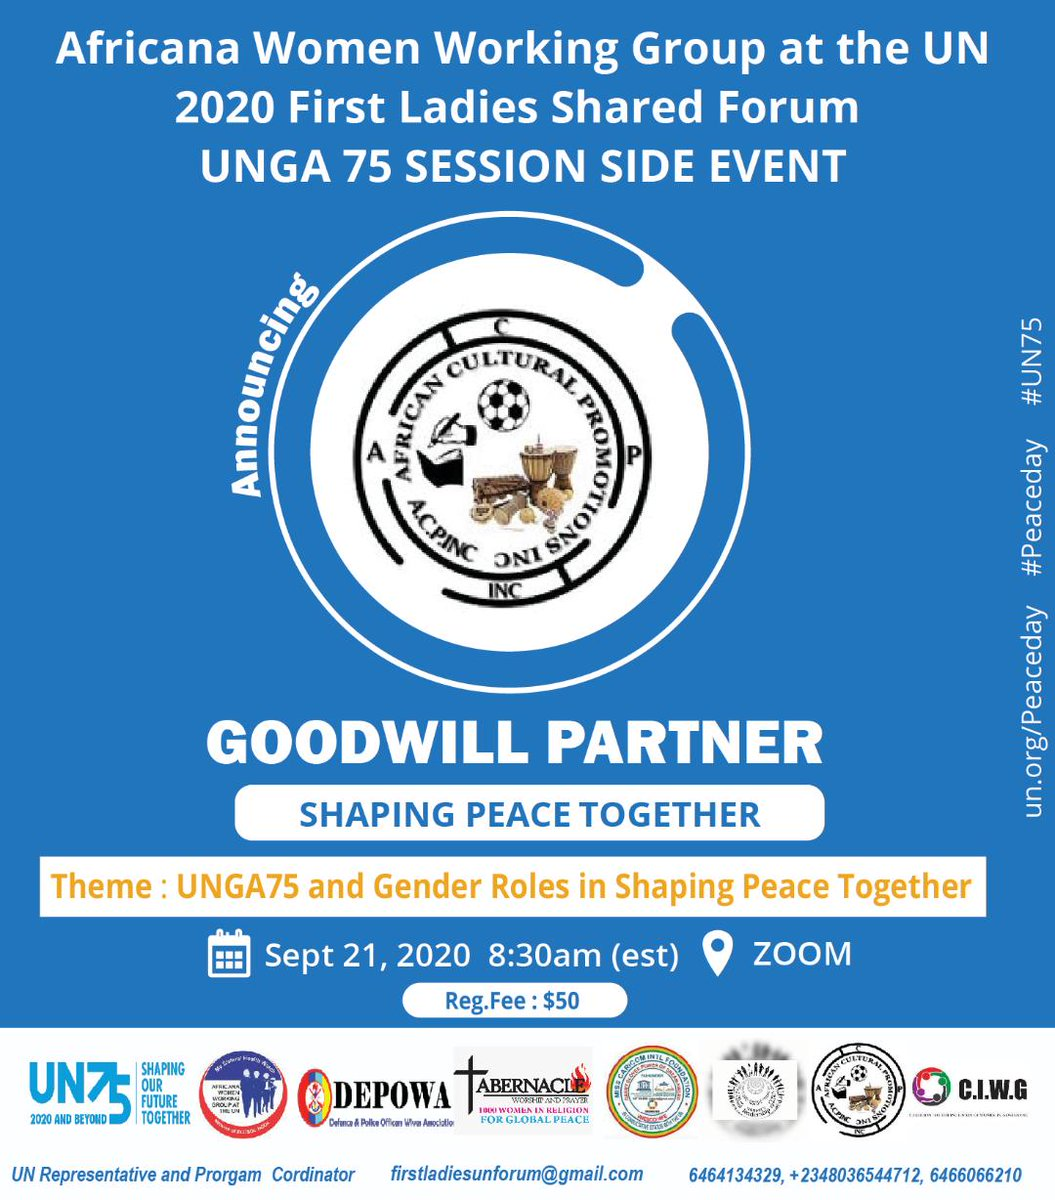 We are proud to share African Cultural Performace Inc (ACP inc), as GOODWILL PARTNERS at Africana Women Working Group at the UN 2020, first Ladies Shared Forum UNGA 75 Session Side Event.   Registration Fees: $50  Registration Link: https://t.co/RhJkIvuOVH #UN75 #UNPeacekeeping https://t.co/Vk9uGCrMOZ